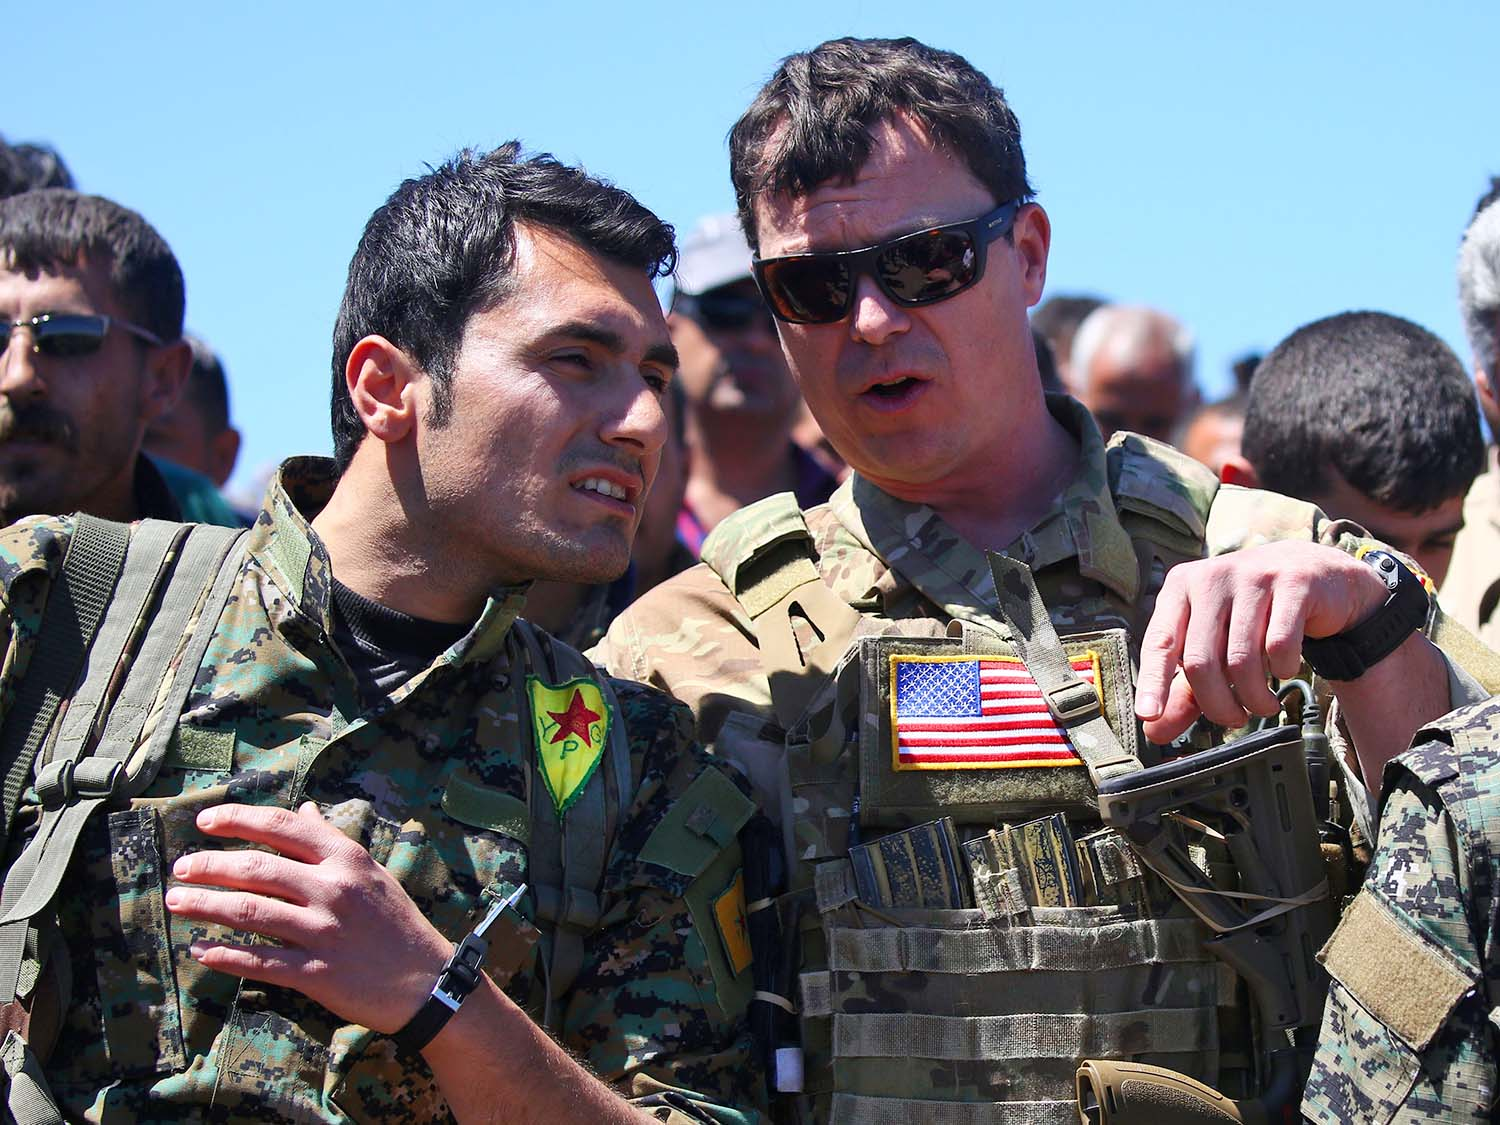 A U.S. officer speaks with a fighter from the YPG at the site of Turkish airstrikes near the northeastern Syrian Kurdish town of Derik on April 25, 2017.